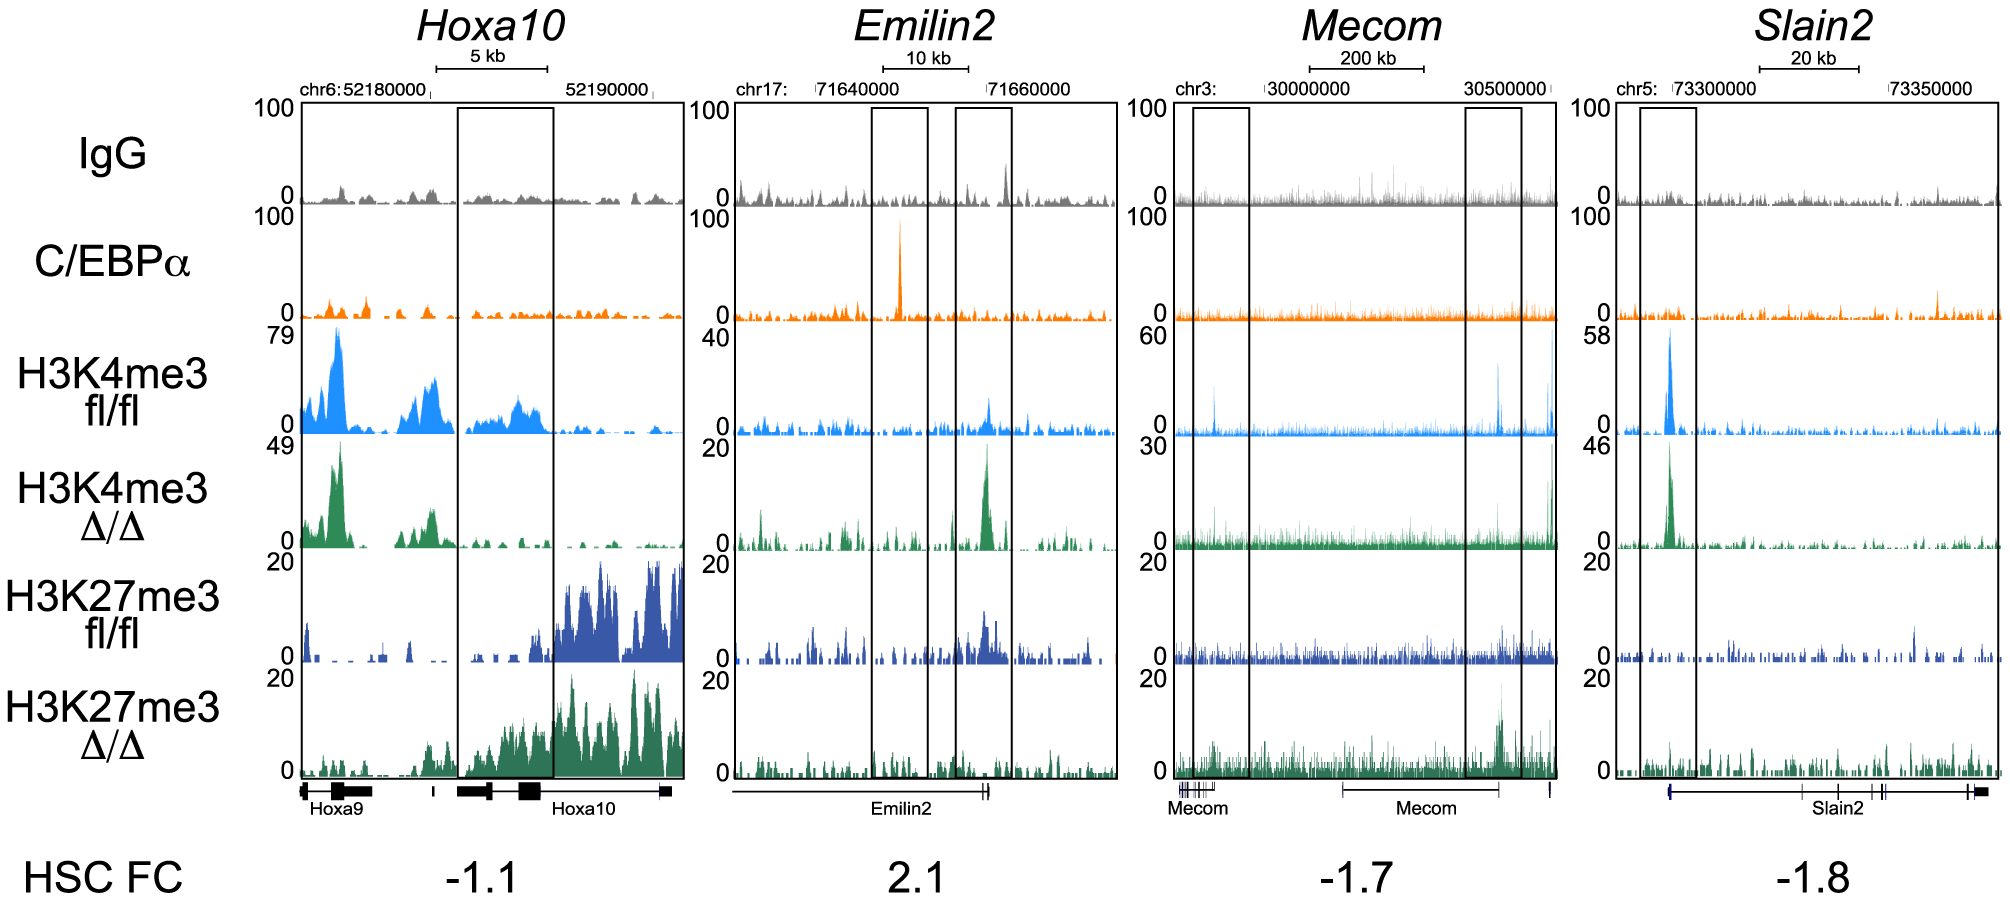 ChIP-seq analysis of H3K4me3 and H3K27me3 in <i>Cebpa</i><sup>Δ/Δ</sup> and <i>Cebpa</i><sup>fl/fl</sup> HSPCs.